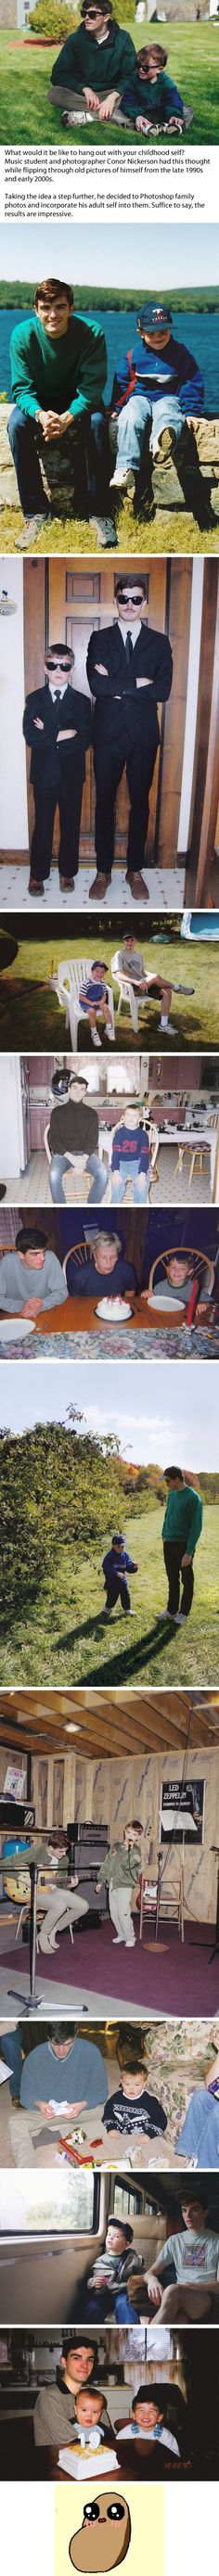 This Man Seamlessly Photoshops Himself Into His Old Childhood Photos